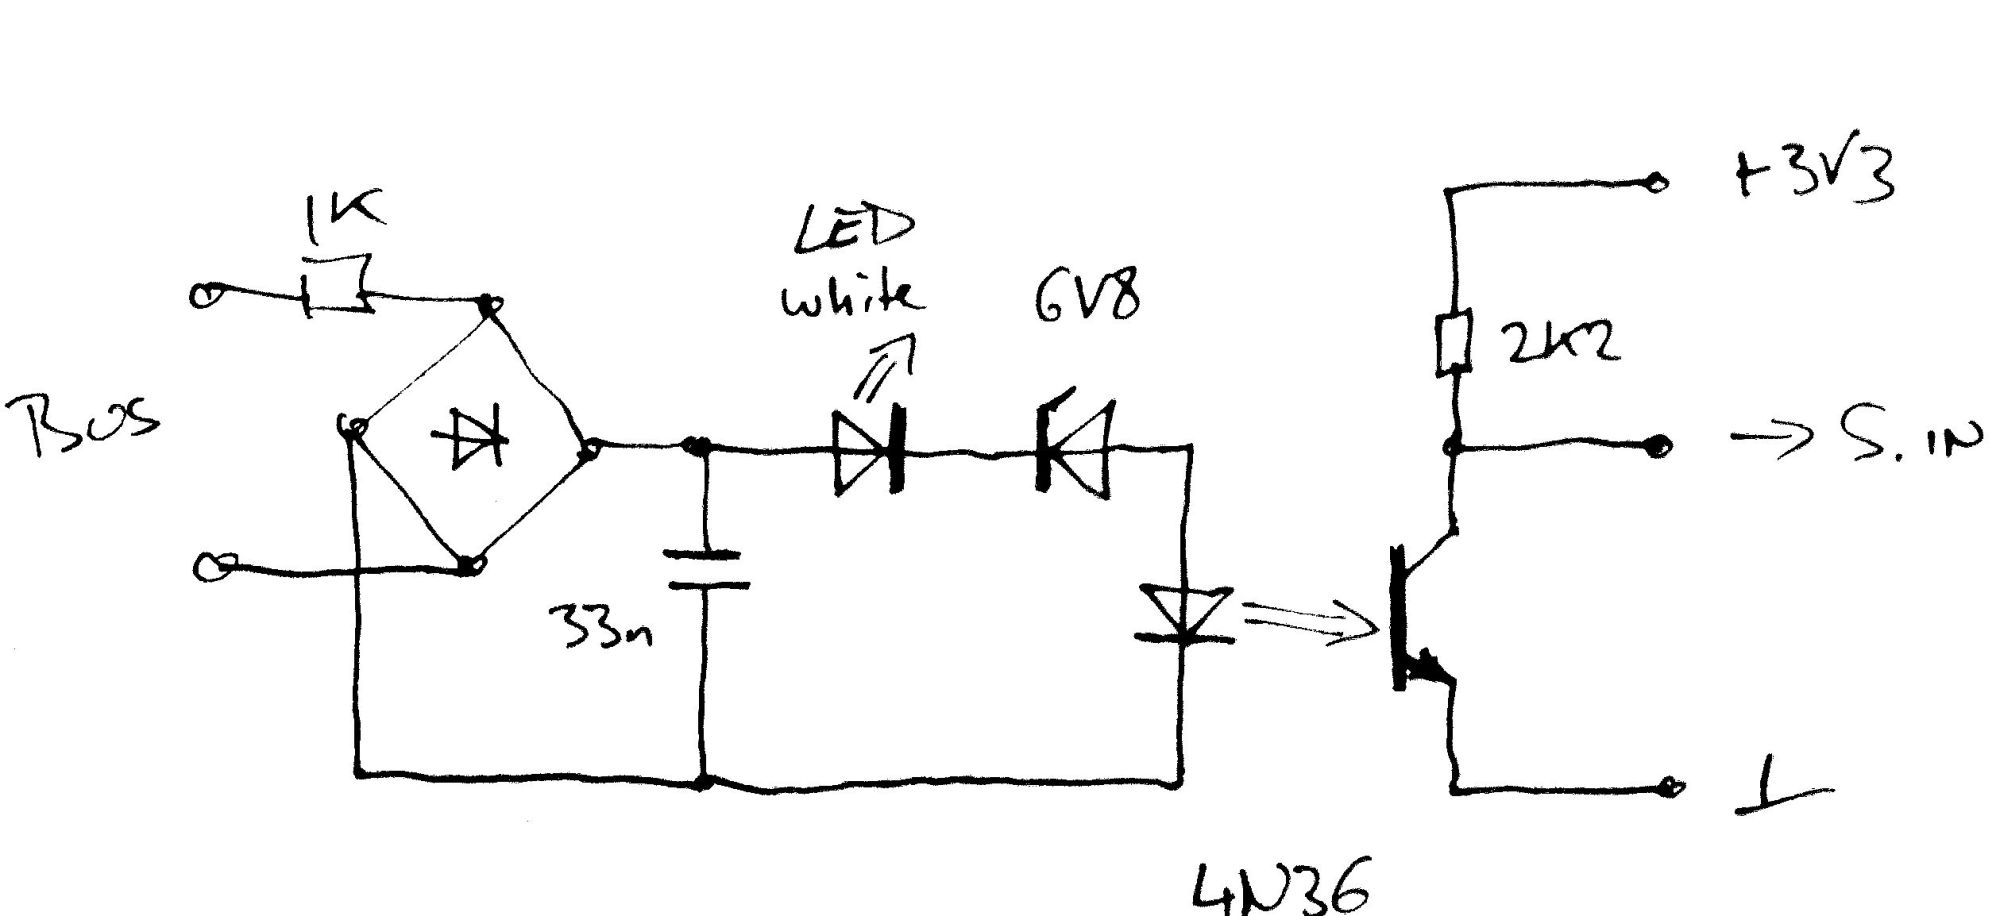 hight resolution of kenwood kdc mp342u wiring diagram 5 1 kenwood amplifier